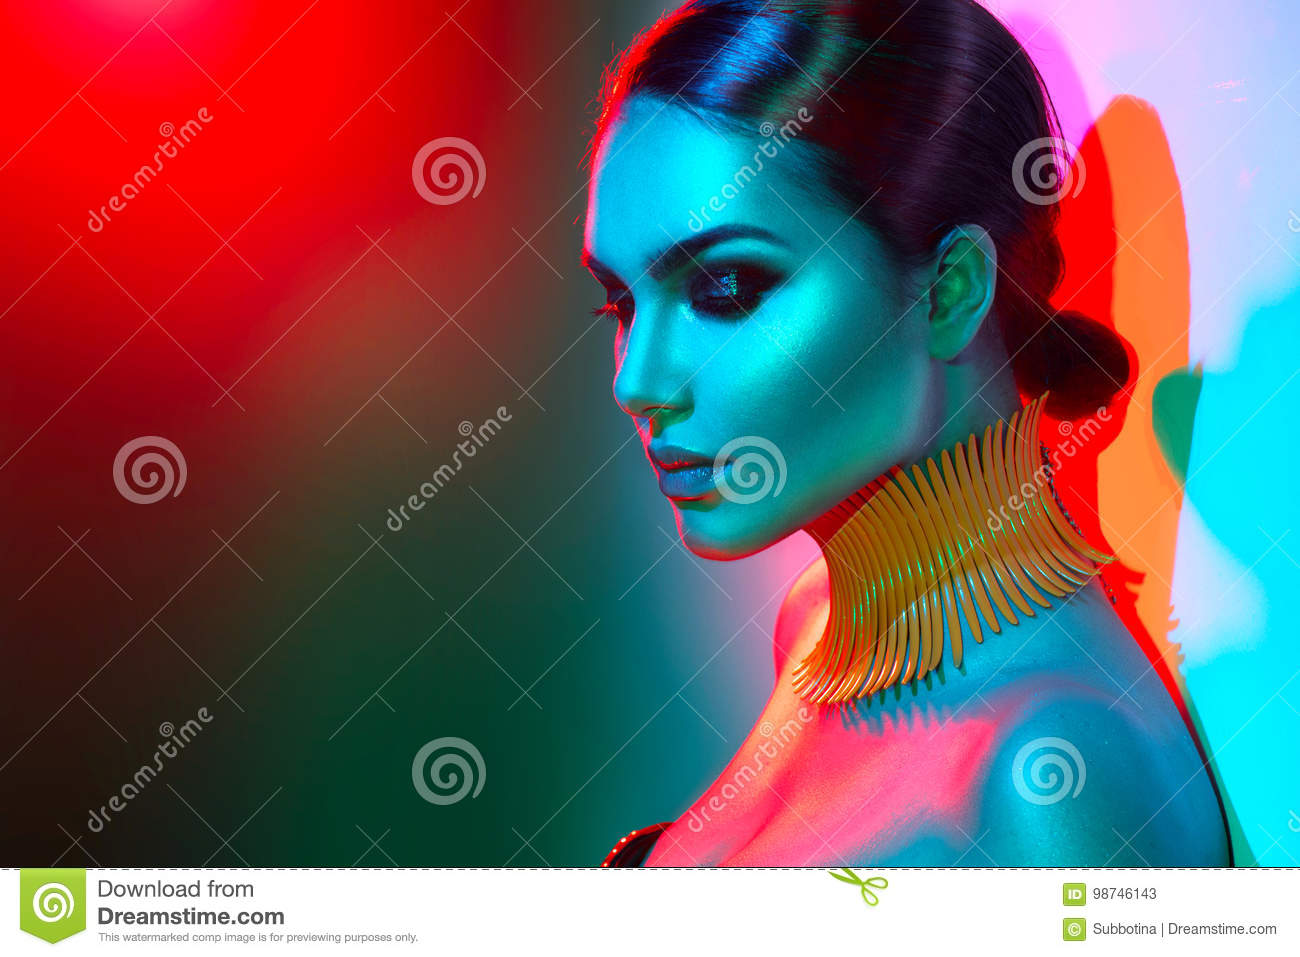 Fashion model woman in colorful bright lights posing